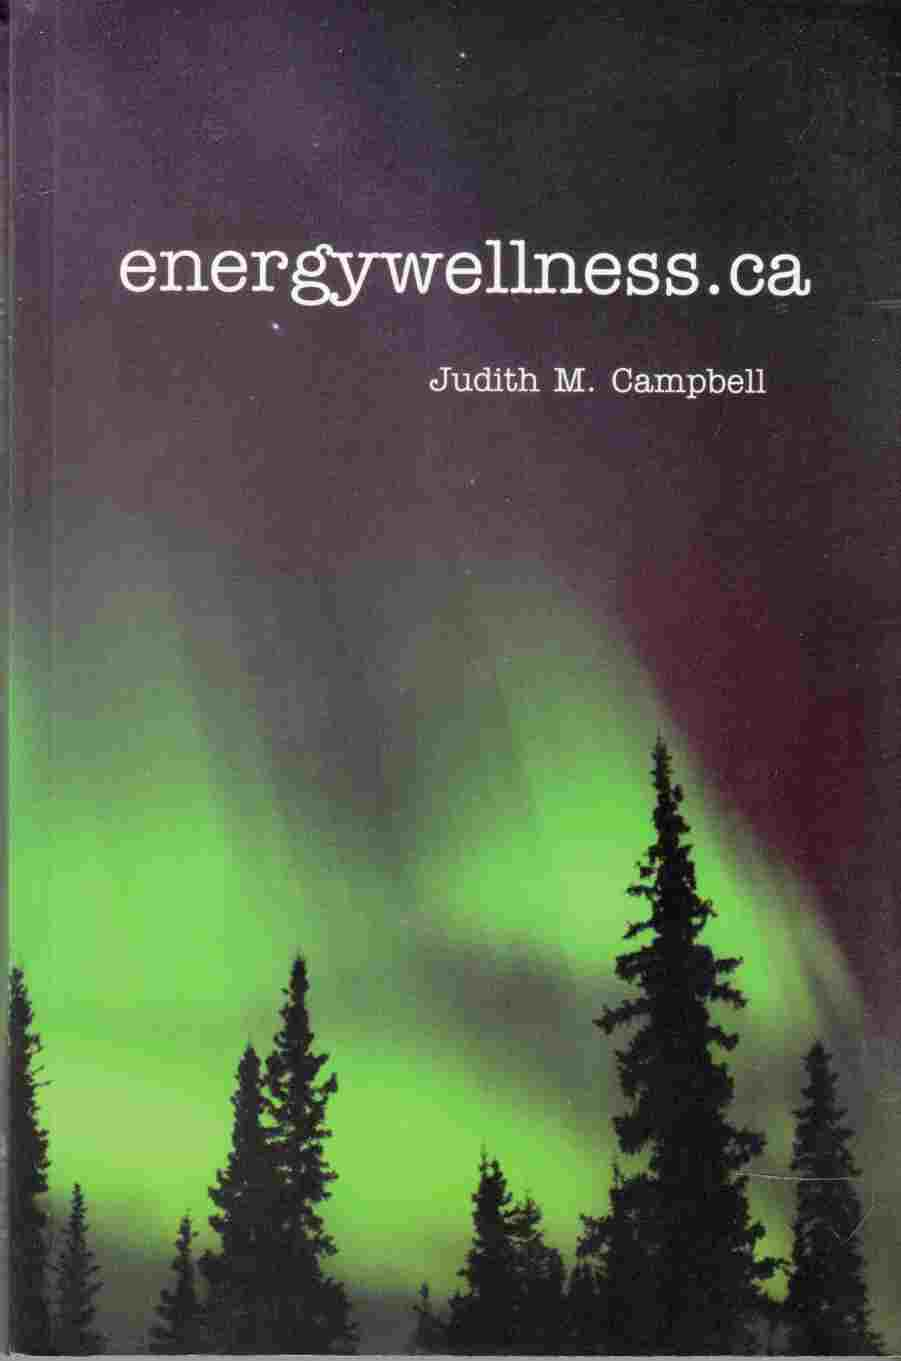 Image for energywellness.ca